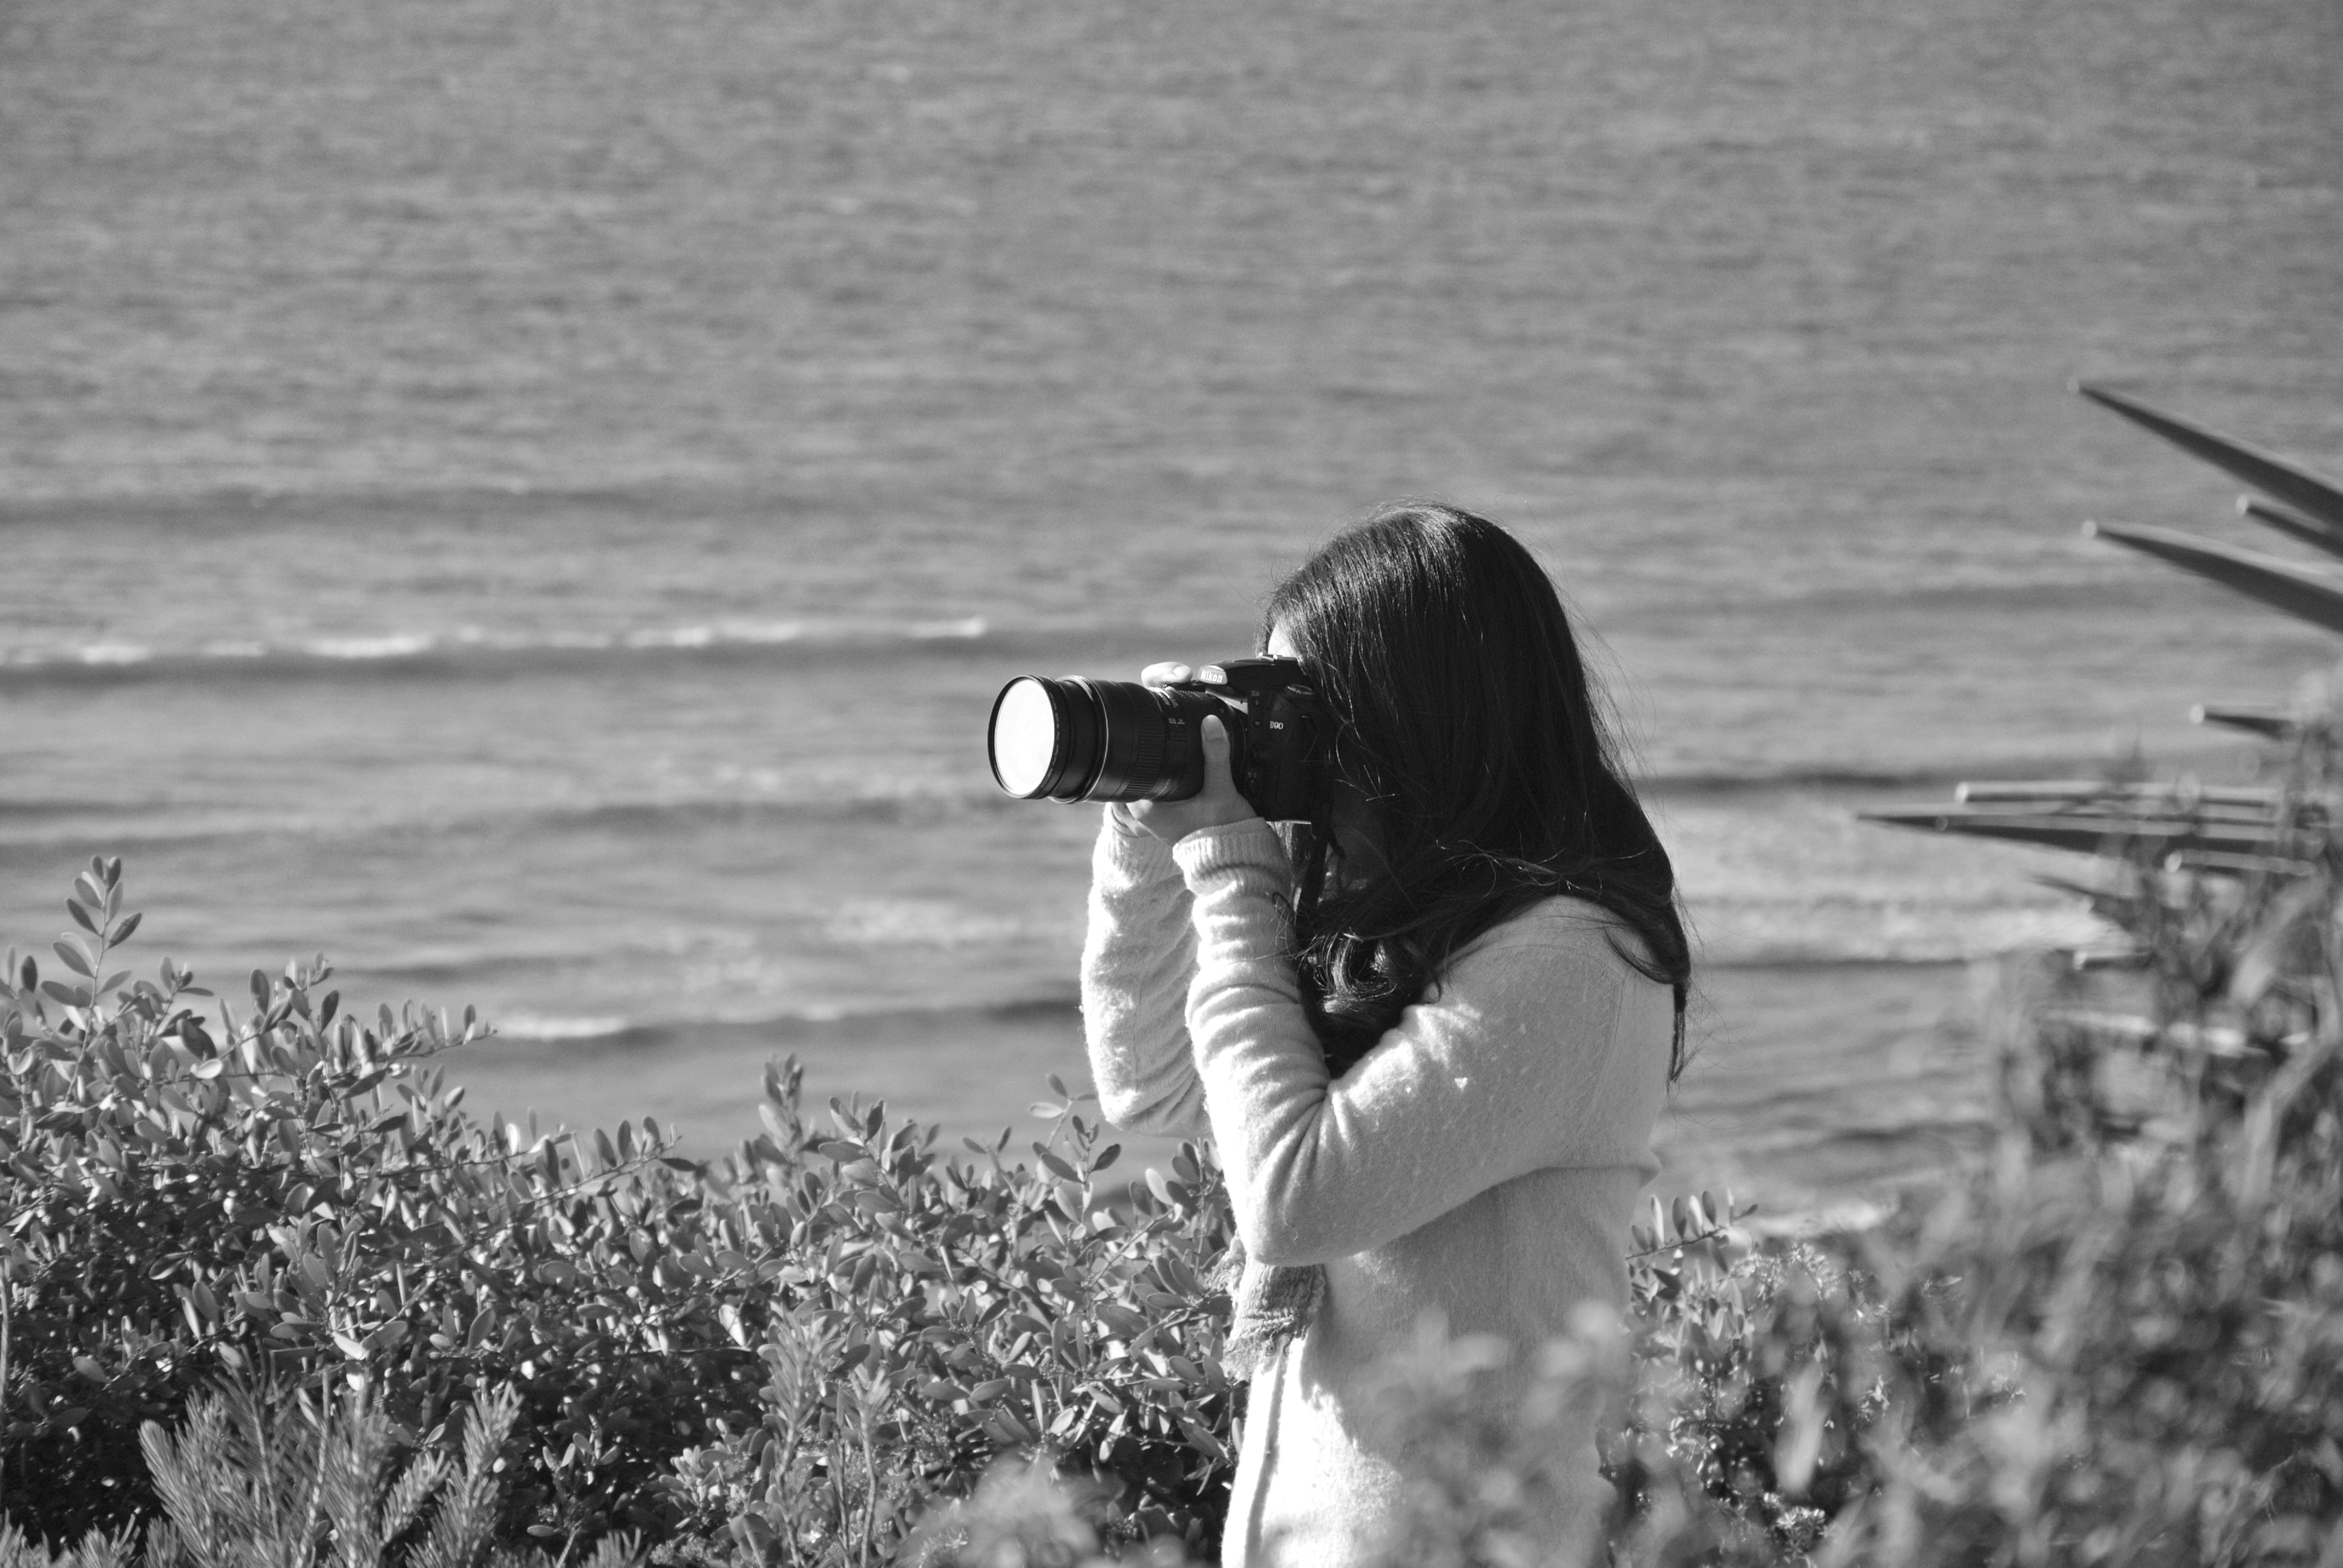 Grayscale photograph of a woman using dslr camera · free stock photo